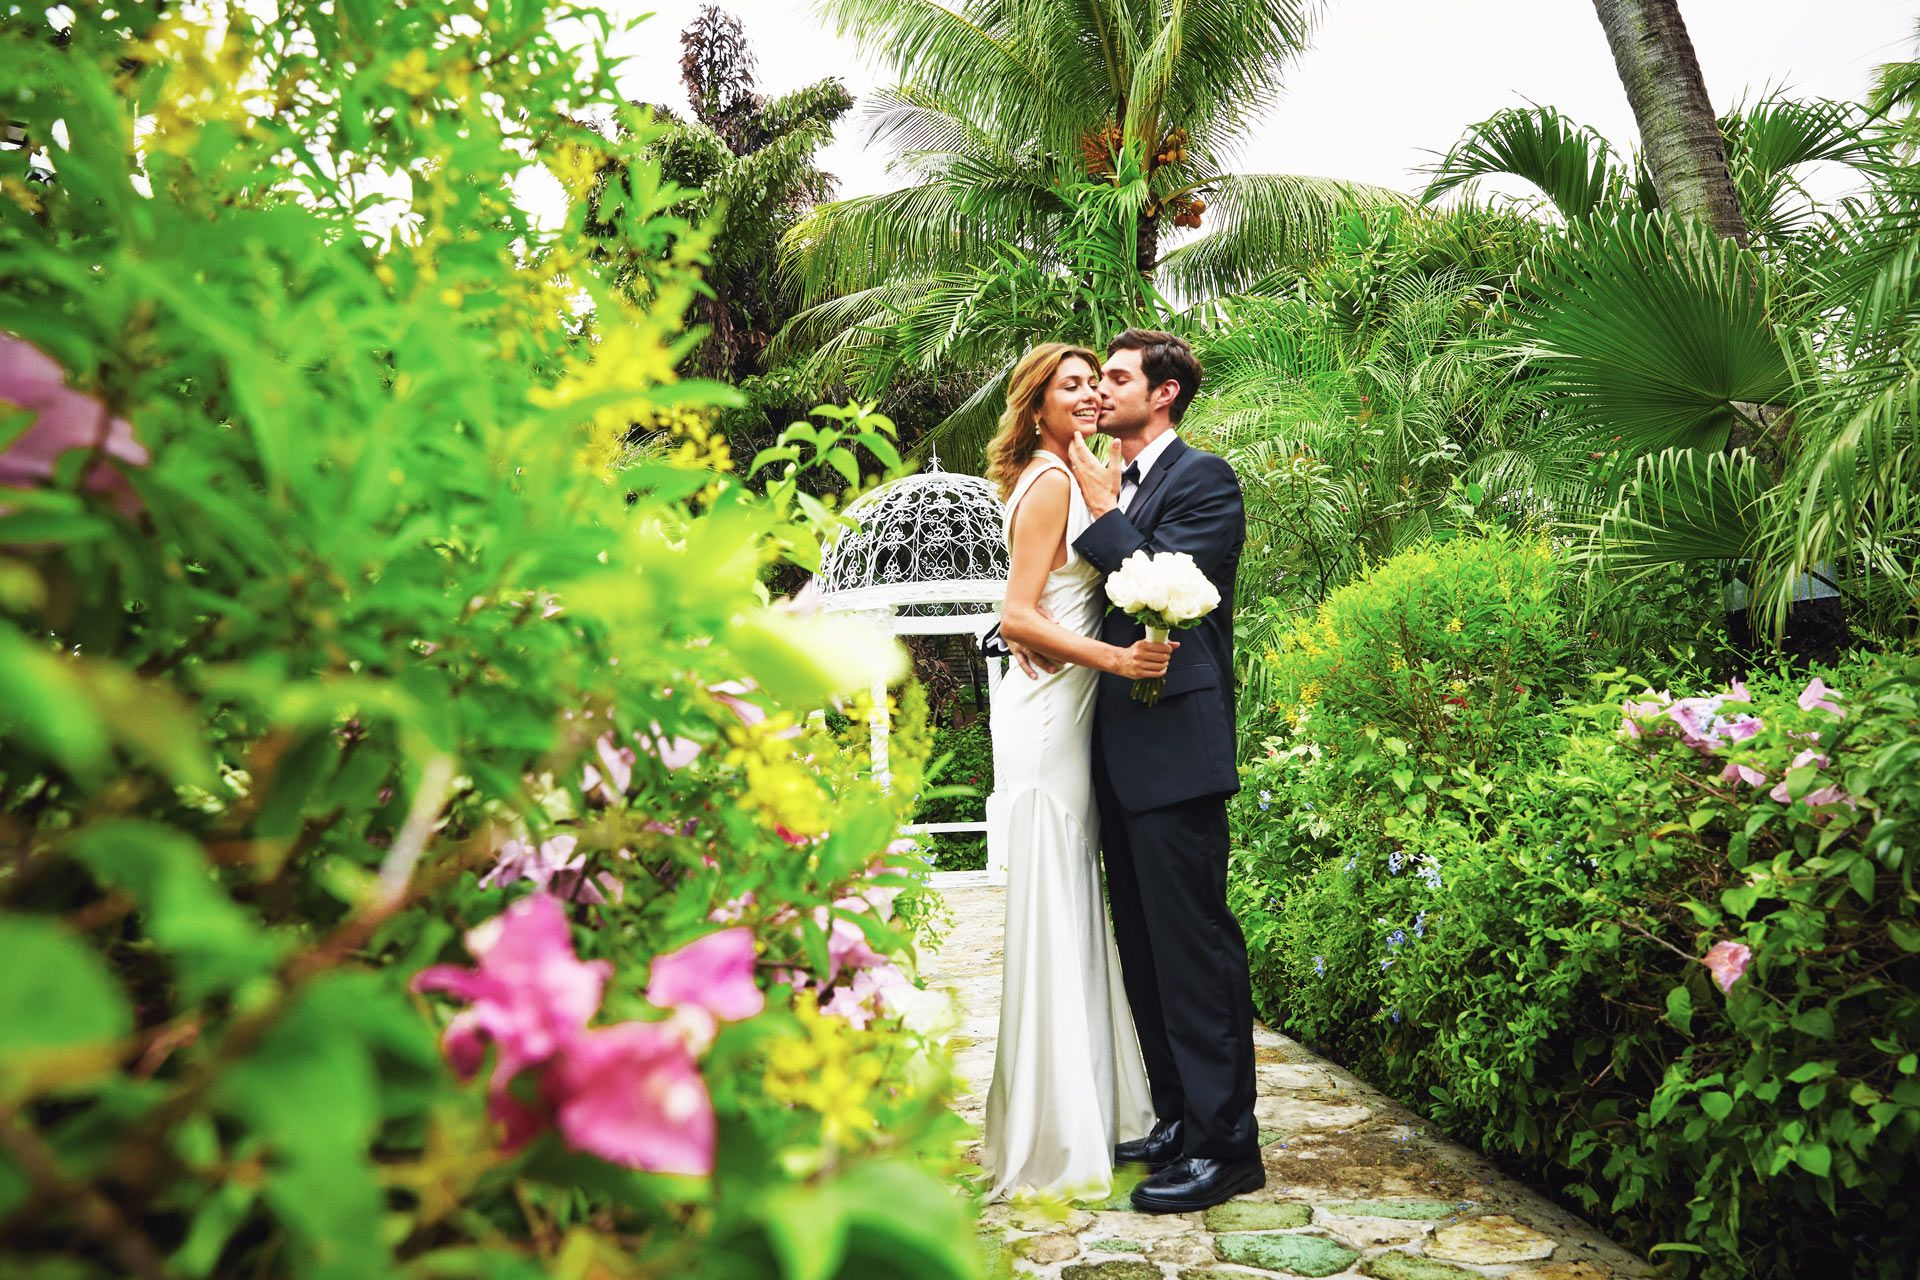 Wedding photo in garden